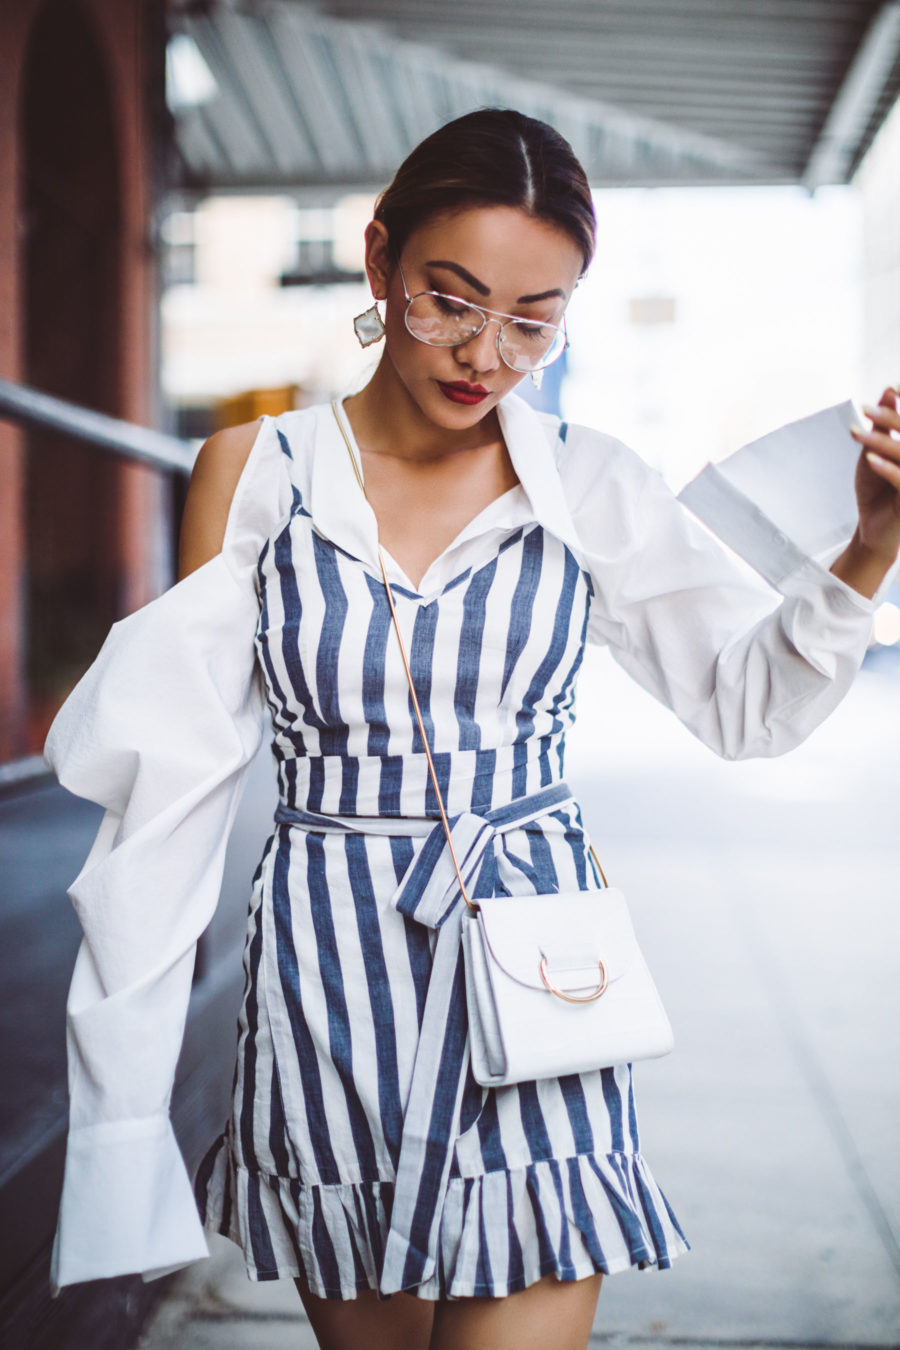 Step Up Your OOTD Photography with These Summer Outfit Details - deconstructed shirt trend, summer layering outfits // Notjessfashion.com